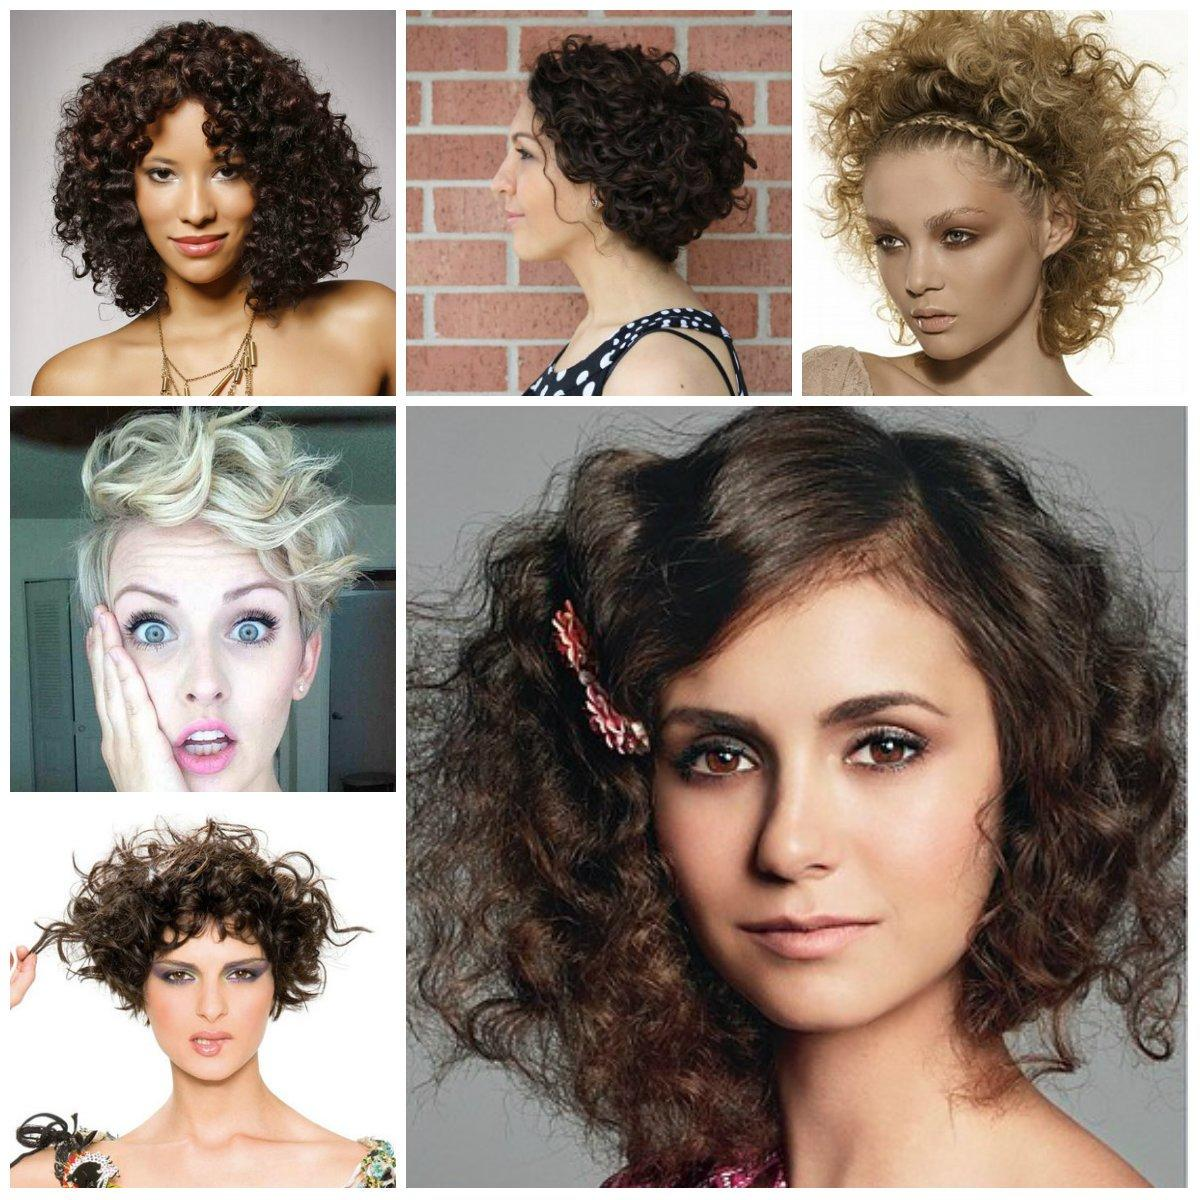 The Best 2016 Trendy Hairstyles For Naturally Curly Hair 2019 Pictures